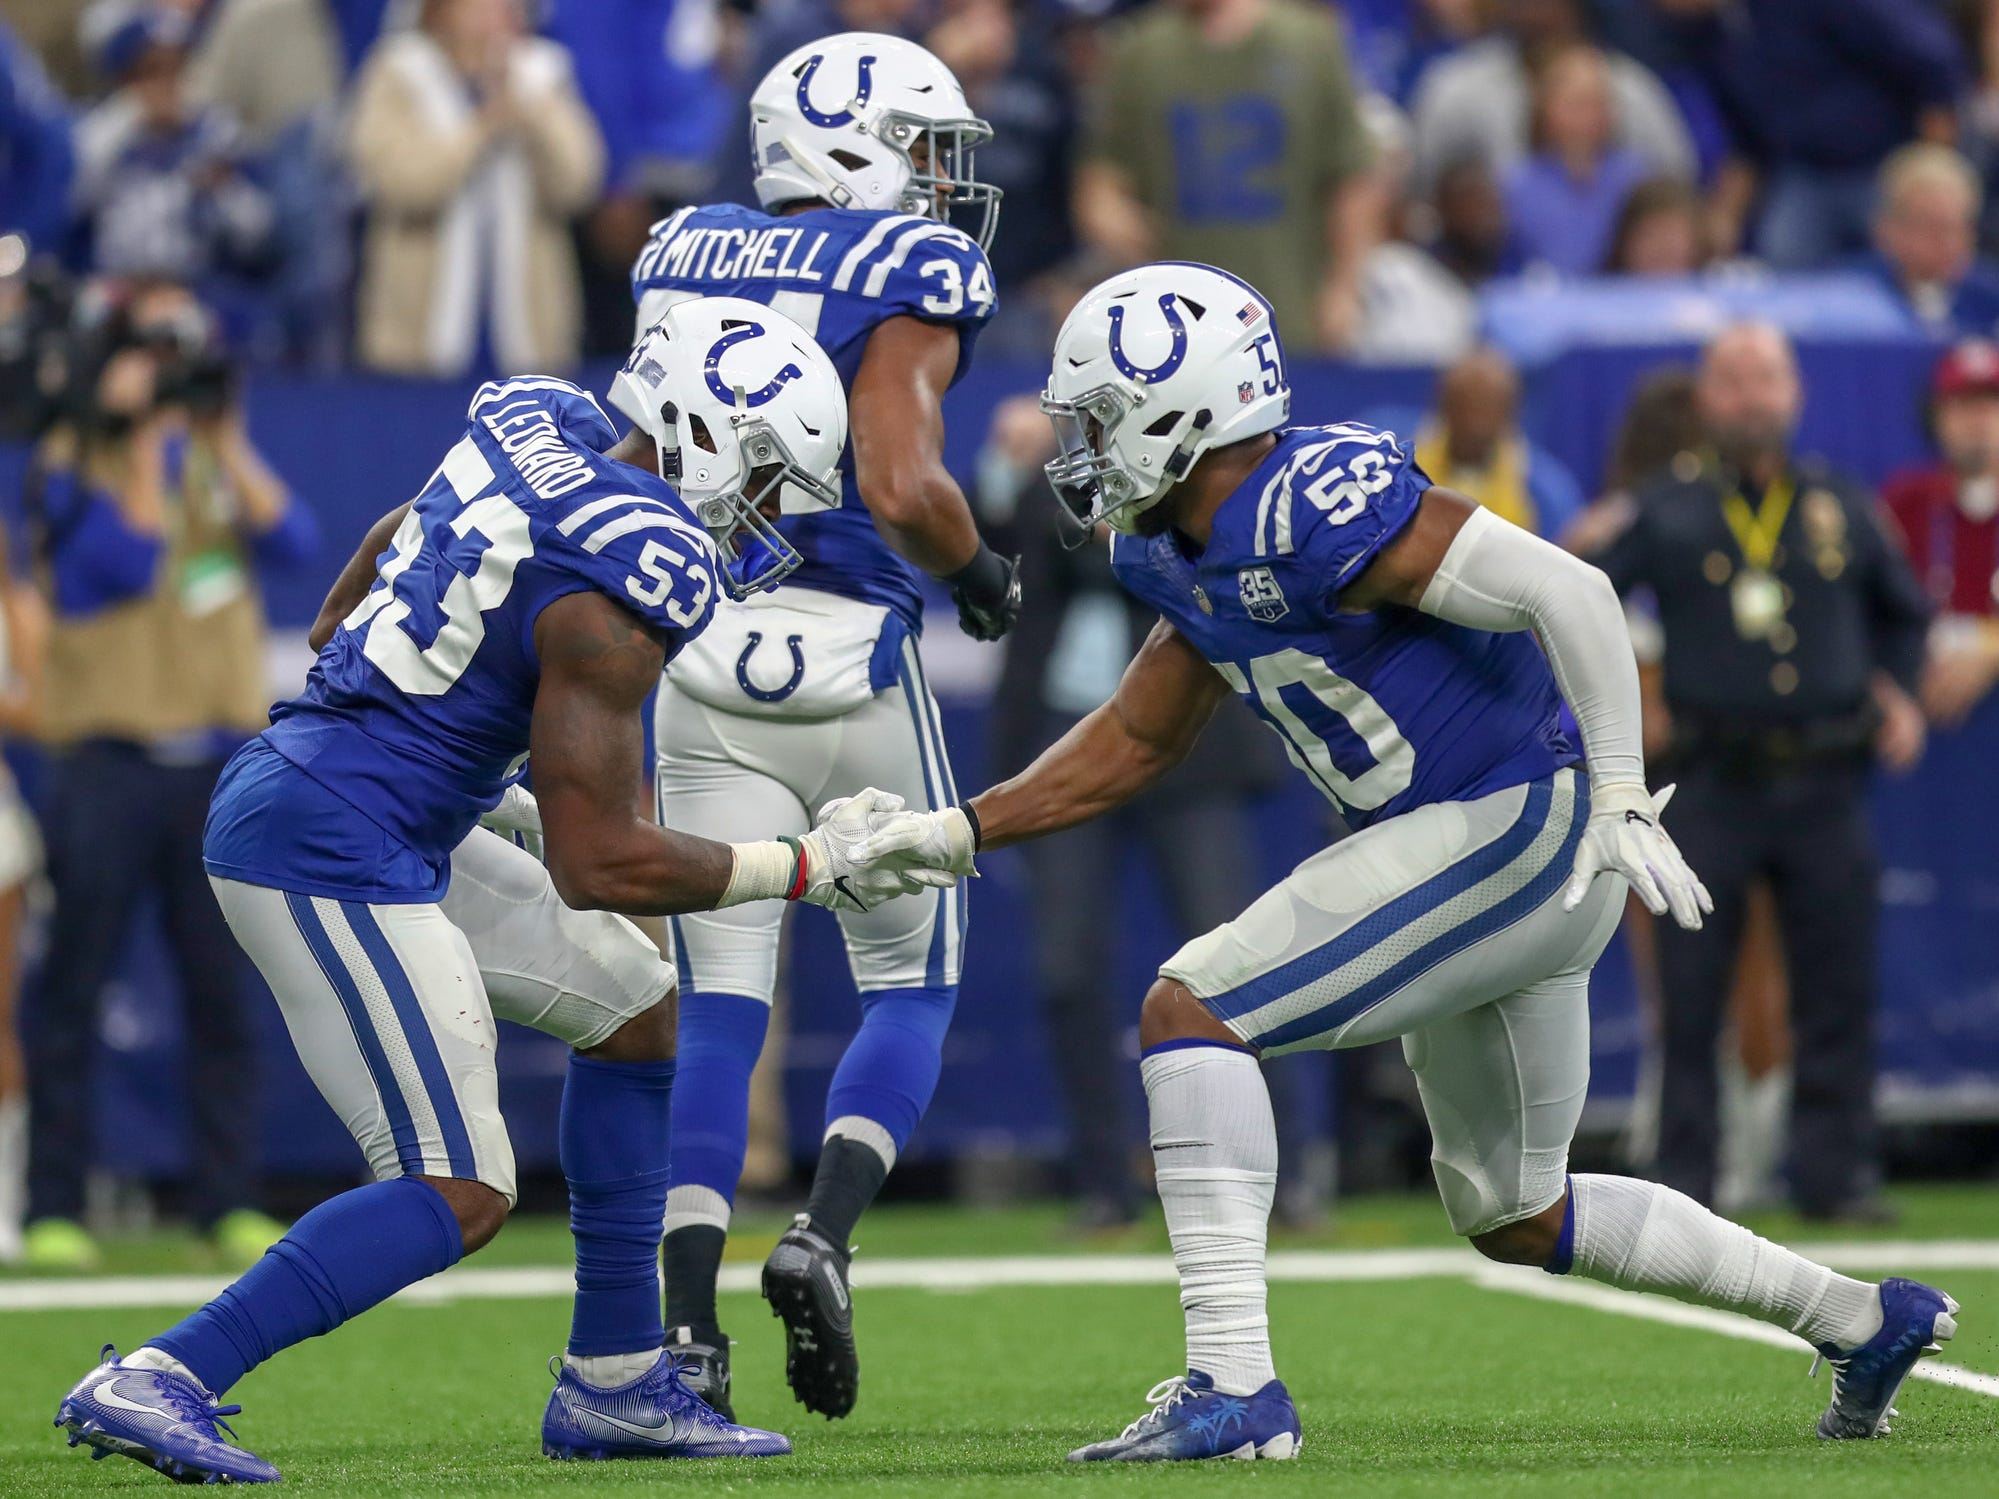 Colts outside linebackers Darius Leonard (53) and Anthony Walker (50) celebrate a Leonard sack against Tennessee Titans quarterback Marcus Mariota (8) at Lucas Oil Stadium in Indianapolis, on Sunday, Nov. 18, 2018.